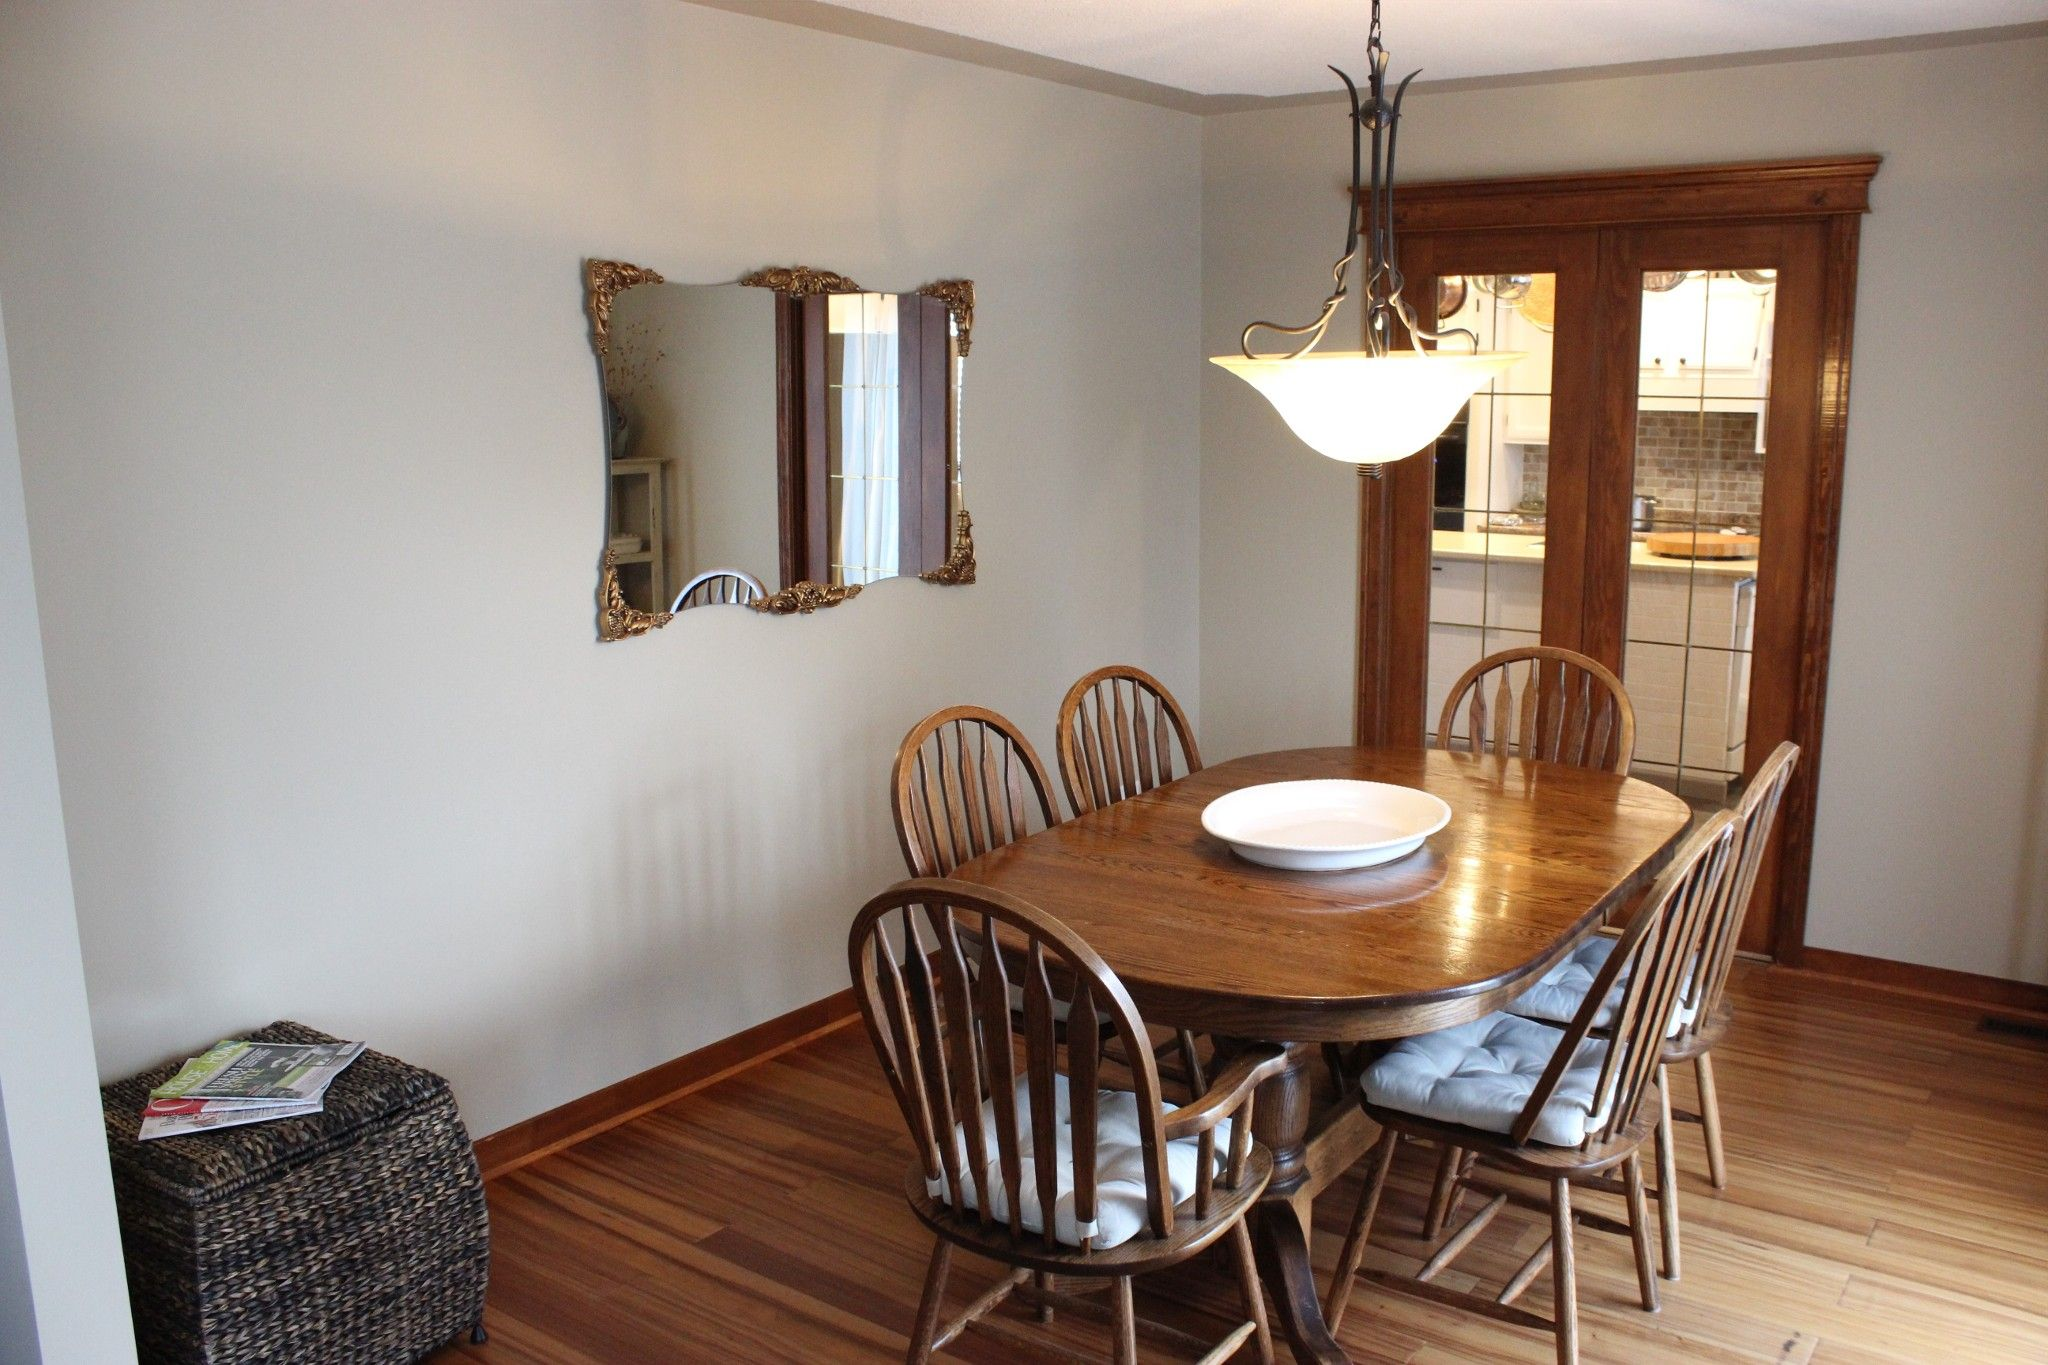 Photo 5: Photos: 3461 Navatanee Drive in Kamloops: South Thompson Valley House for sale : MLS®# 150033